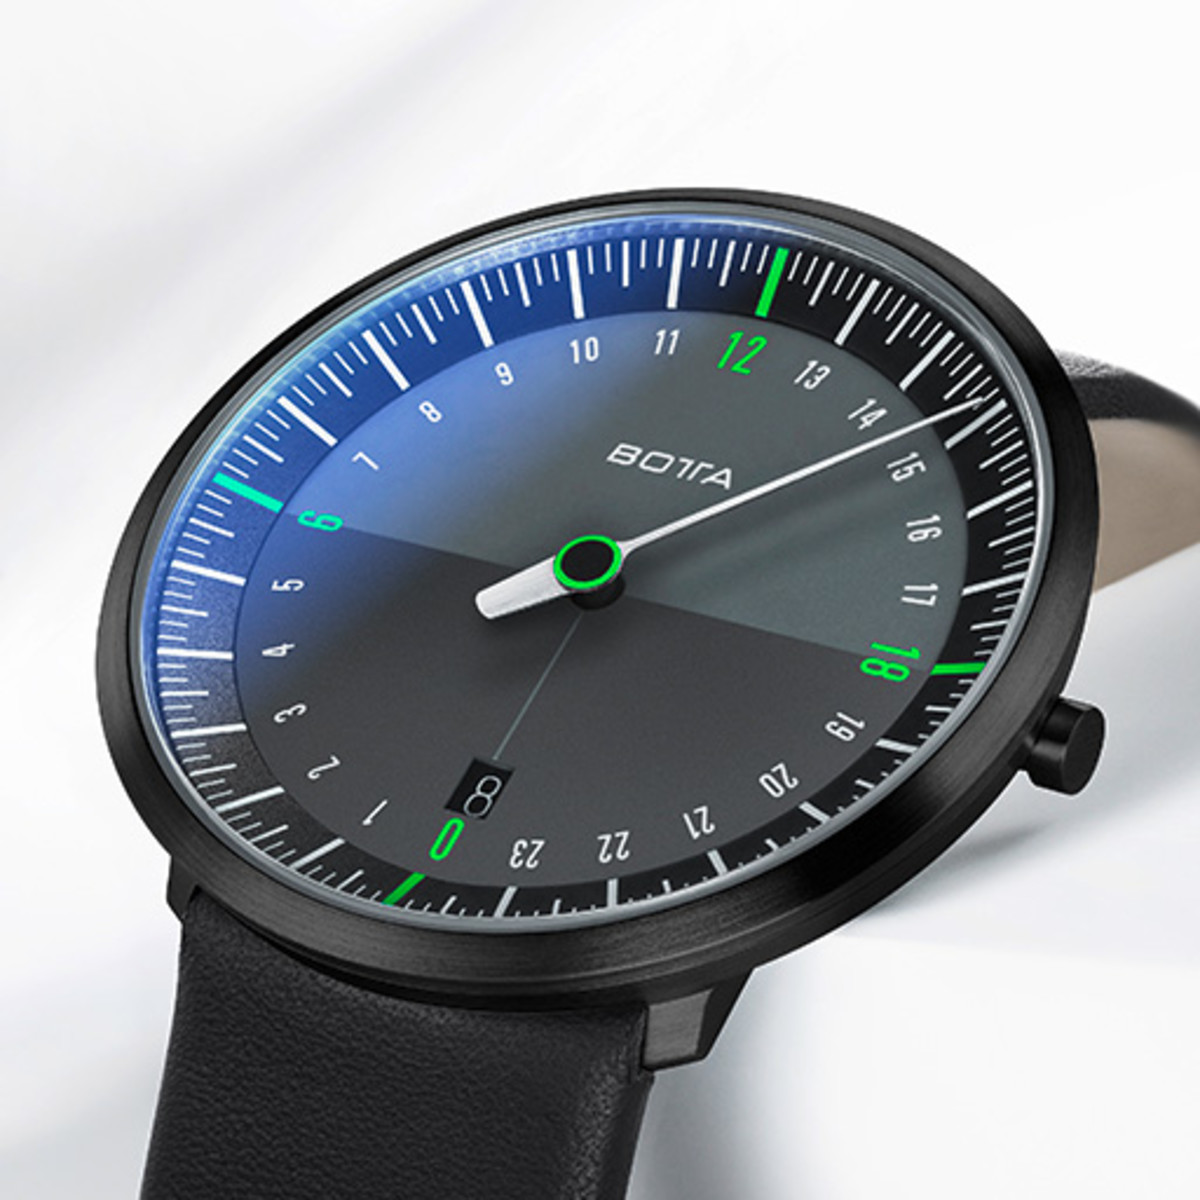 botta-design-uno-24-neo-watch-04